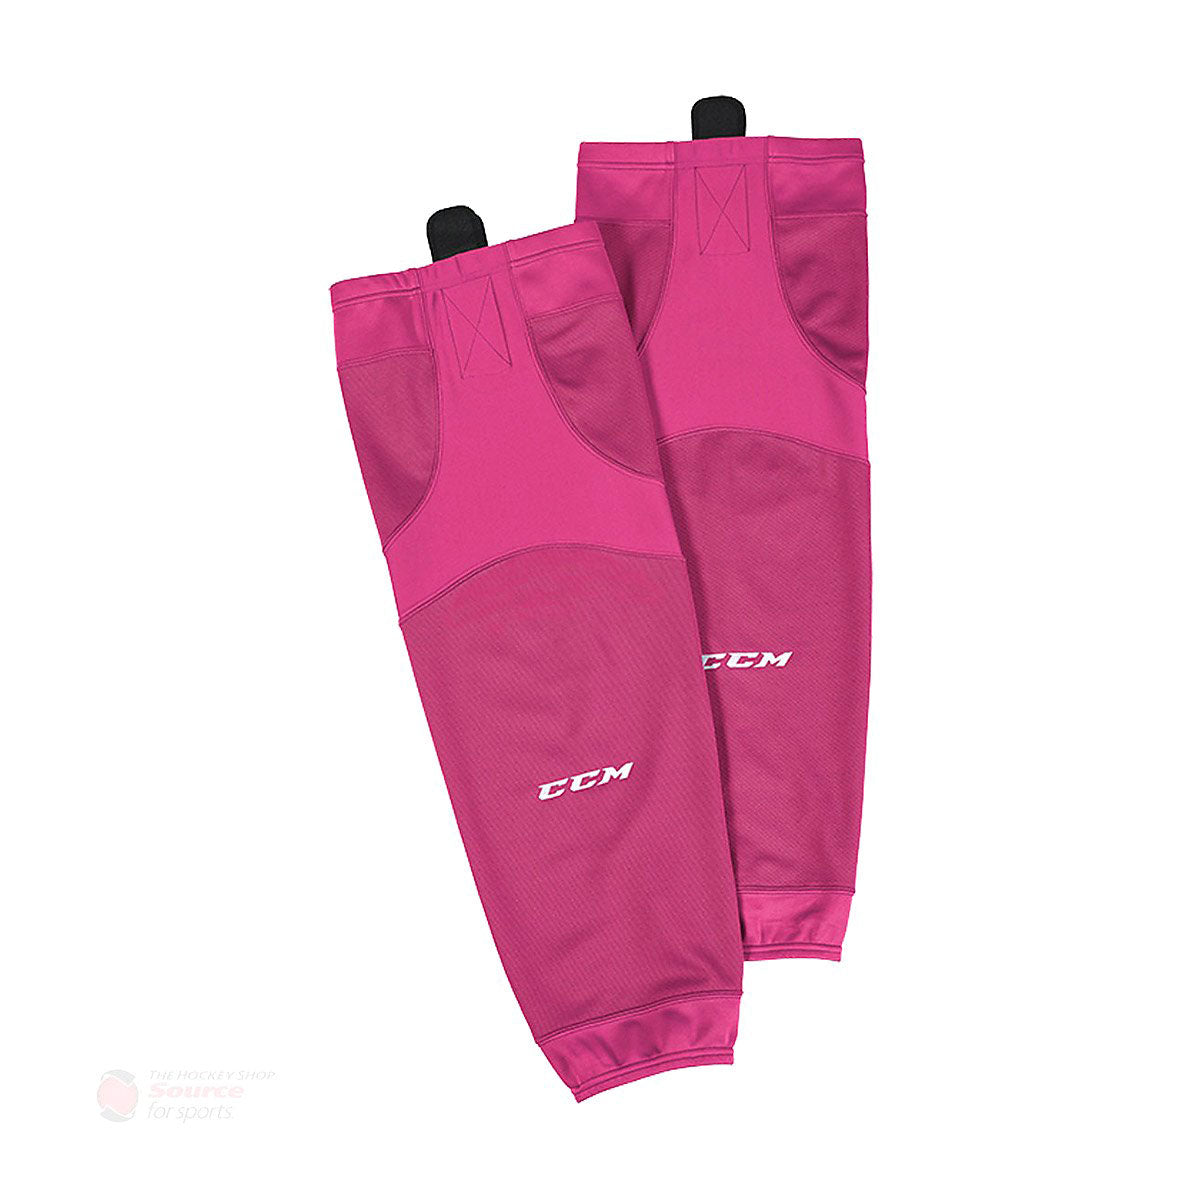 CCM Quicklite 6000 Pink Hockey Socks